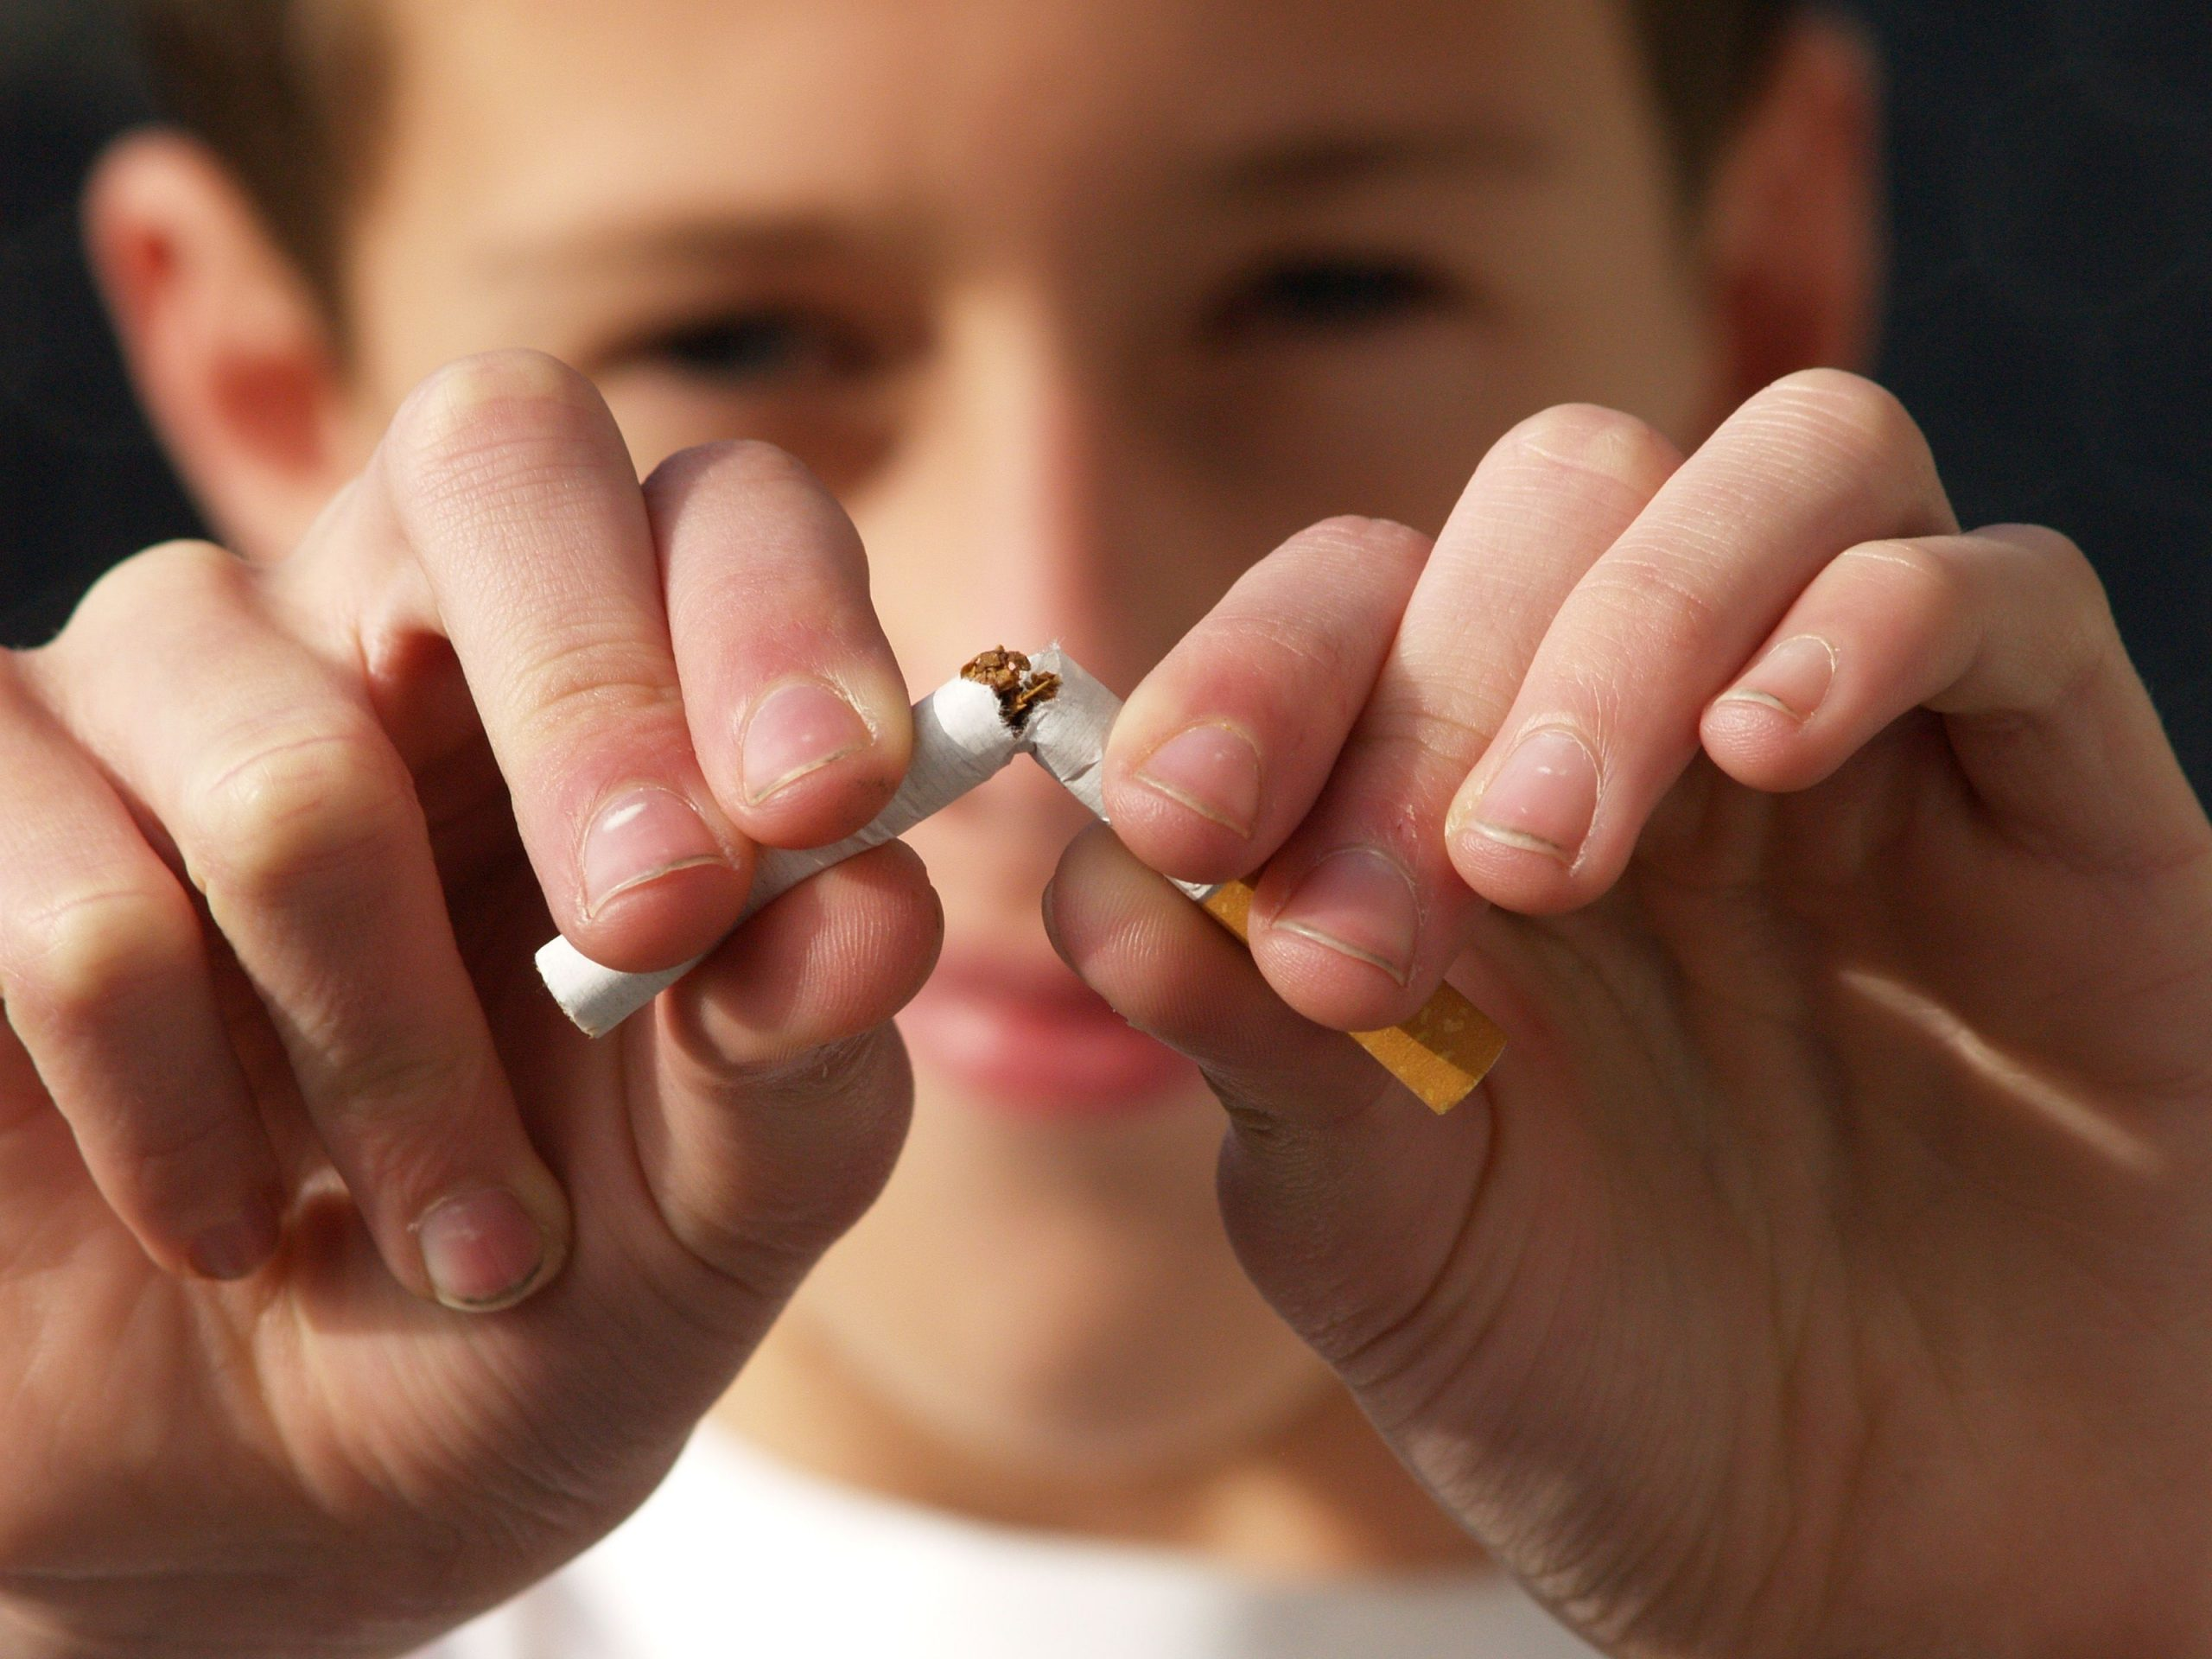 Rowlett TX Dentist   Tobacco & Your Teeth: The Risks of Chewing and Smoking